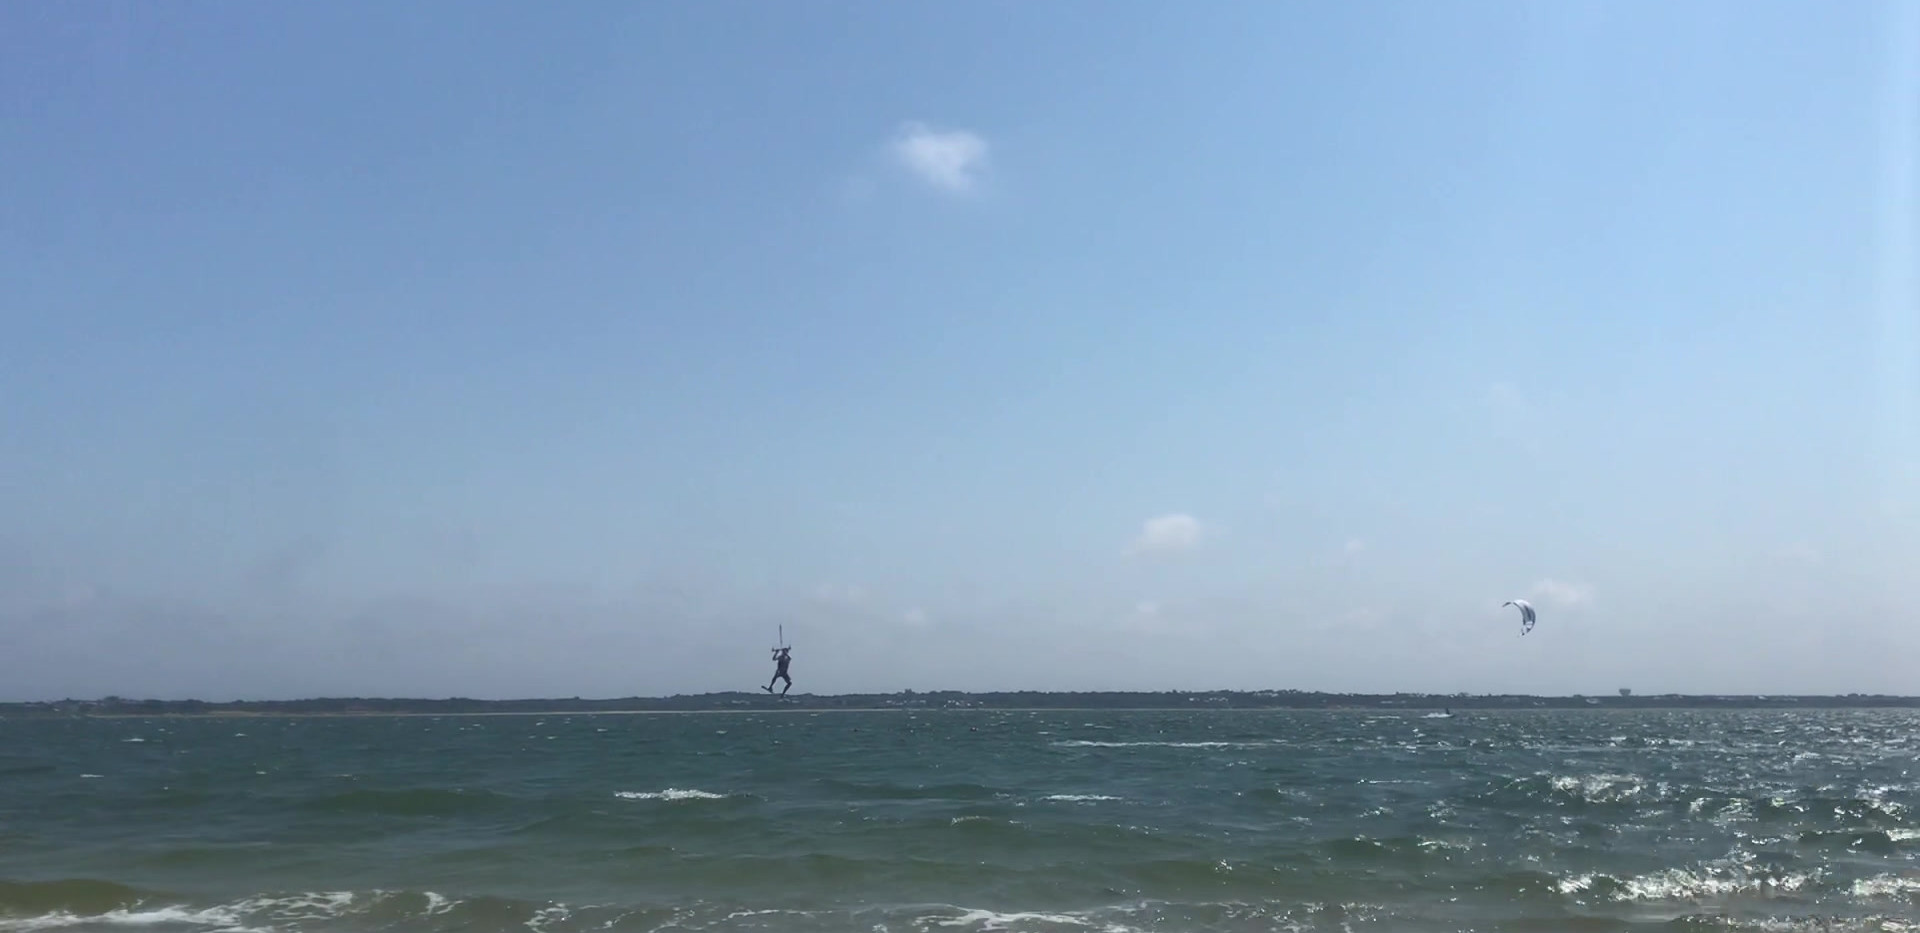 Whaly 455R Kiting ACK